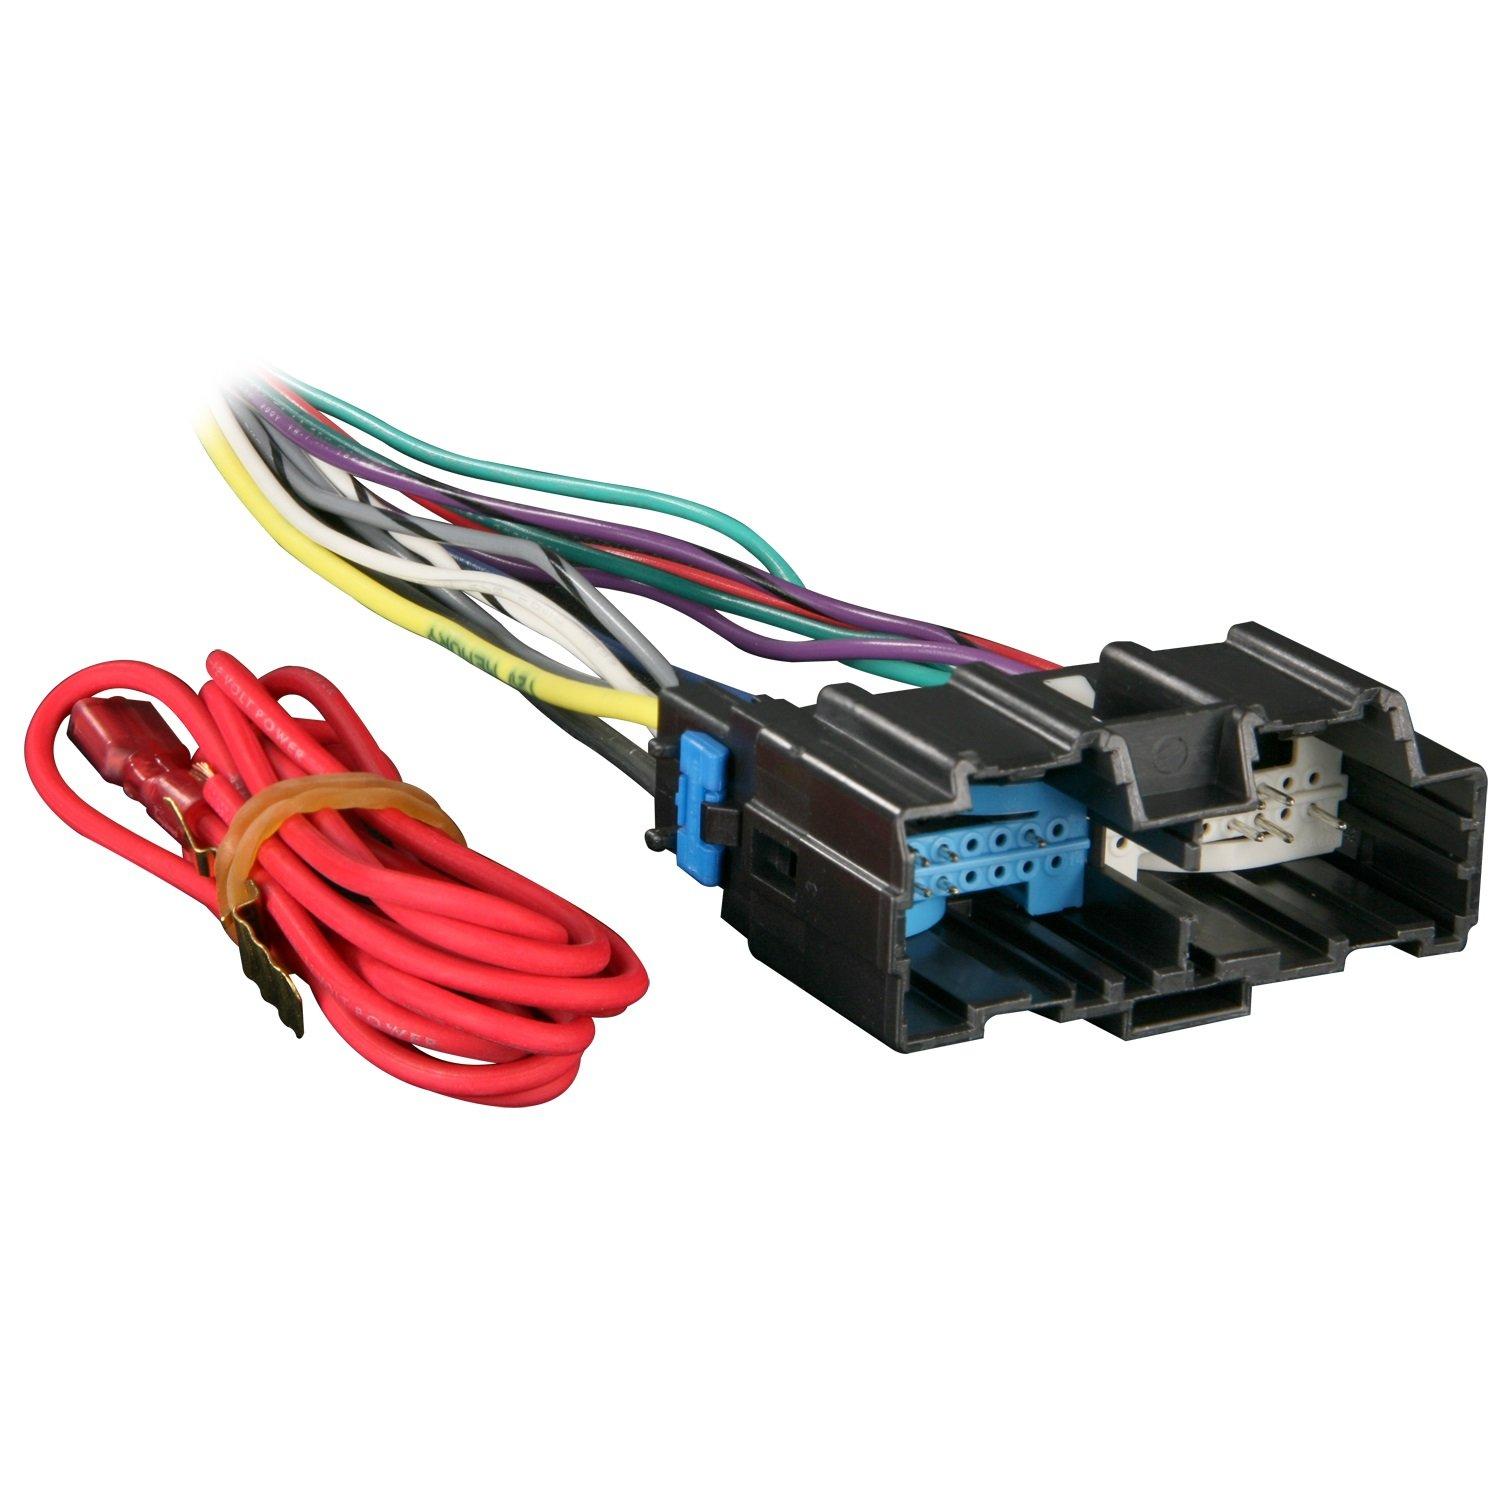 71ZzH dyg7L._SL1500_ amazon com metra 70 2105 radio wiring harness for impala monte 2006 monte carlo stereo wiring diagram at gsmx.co